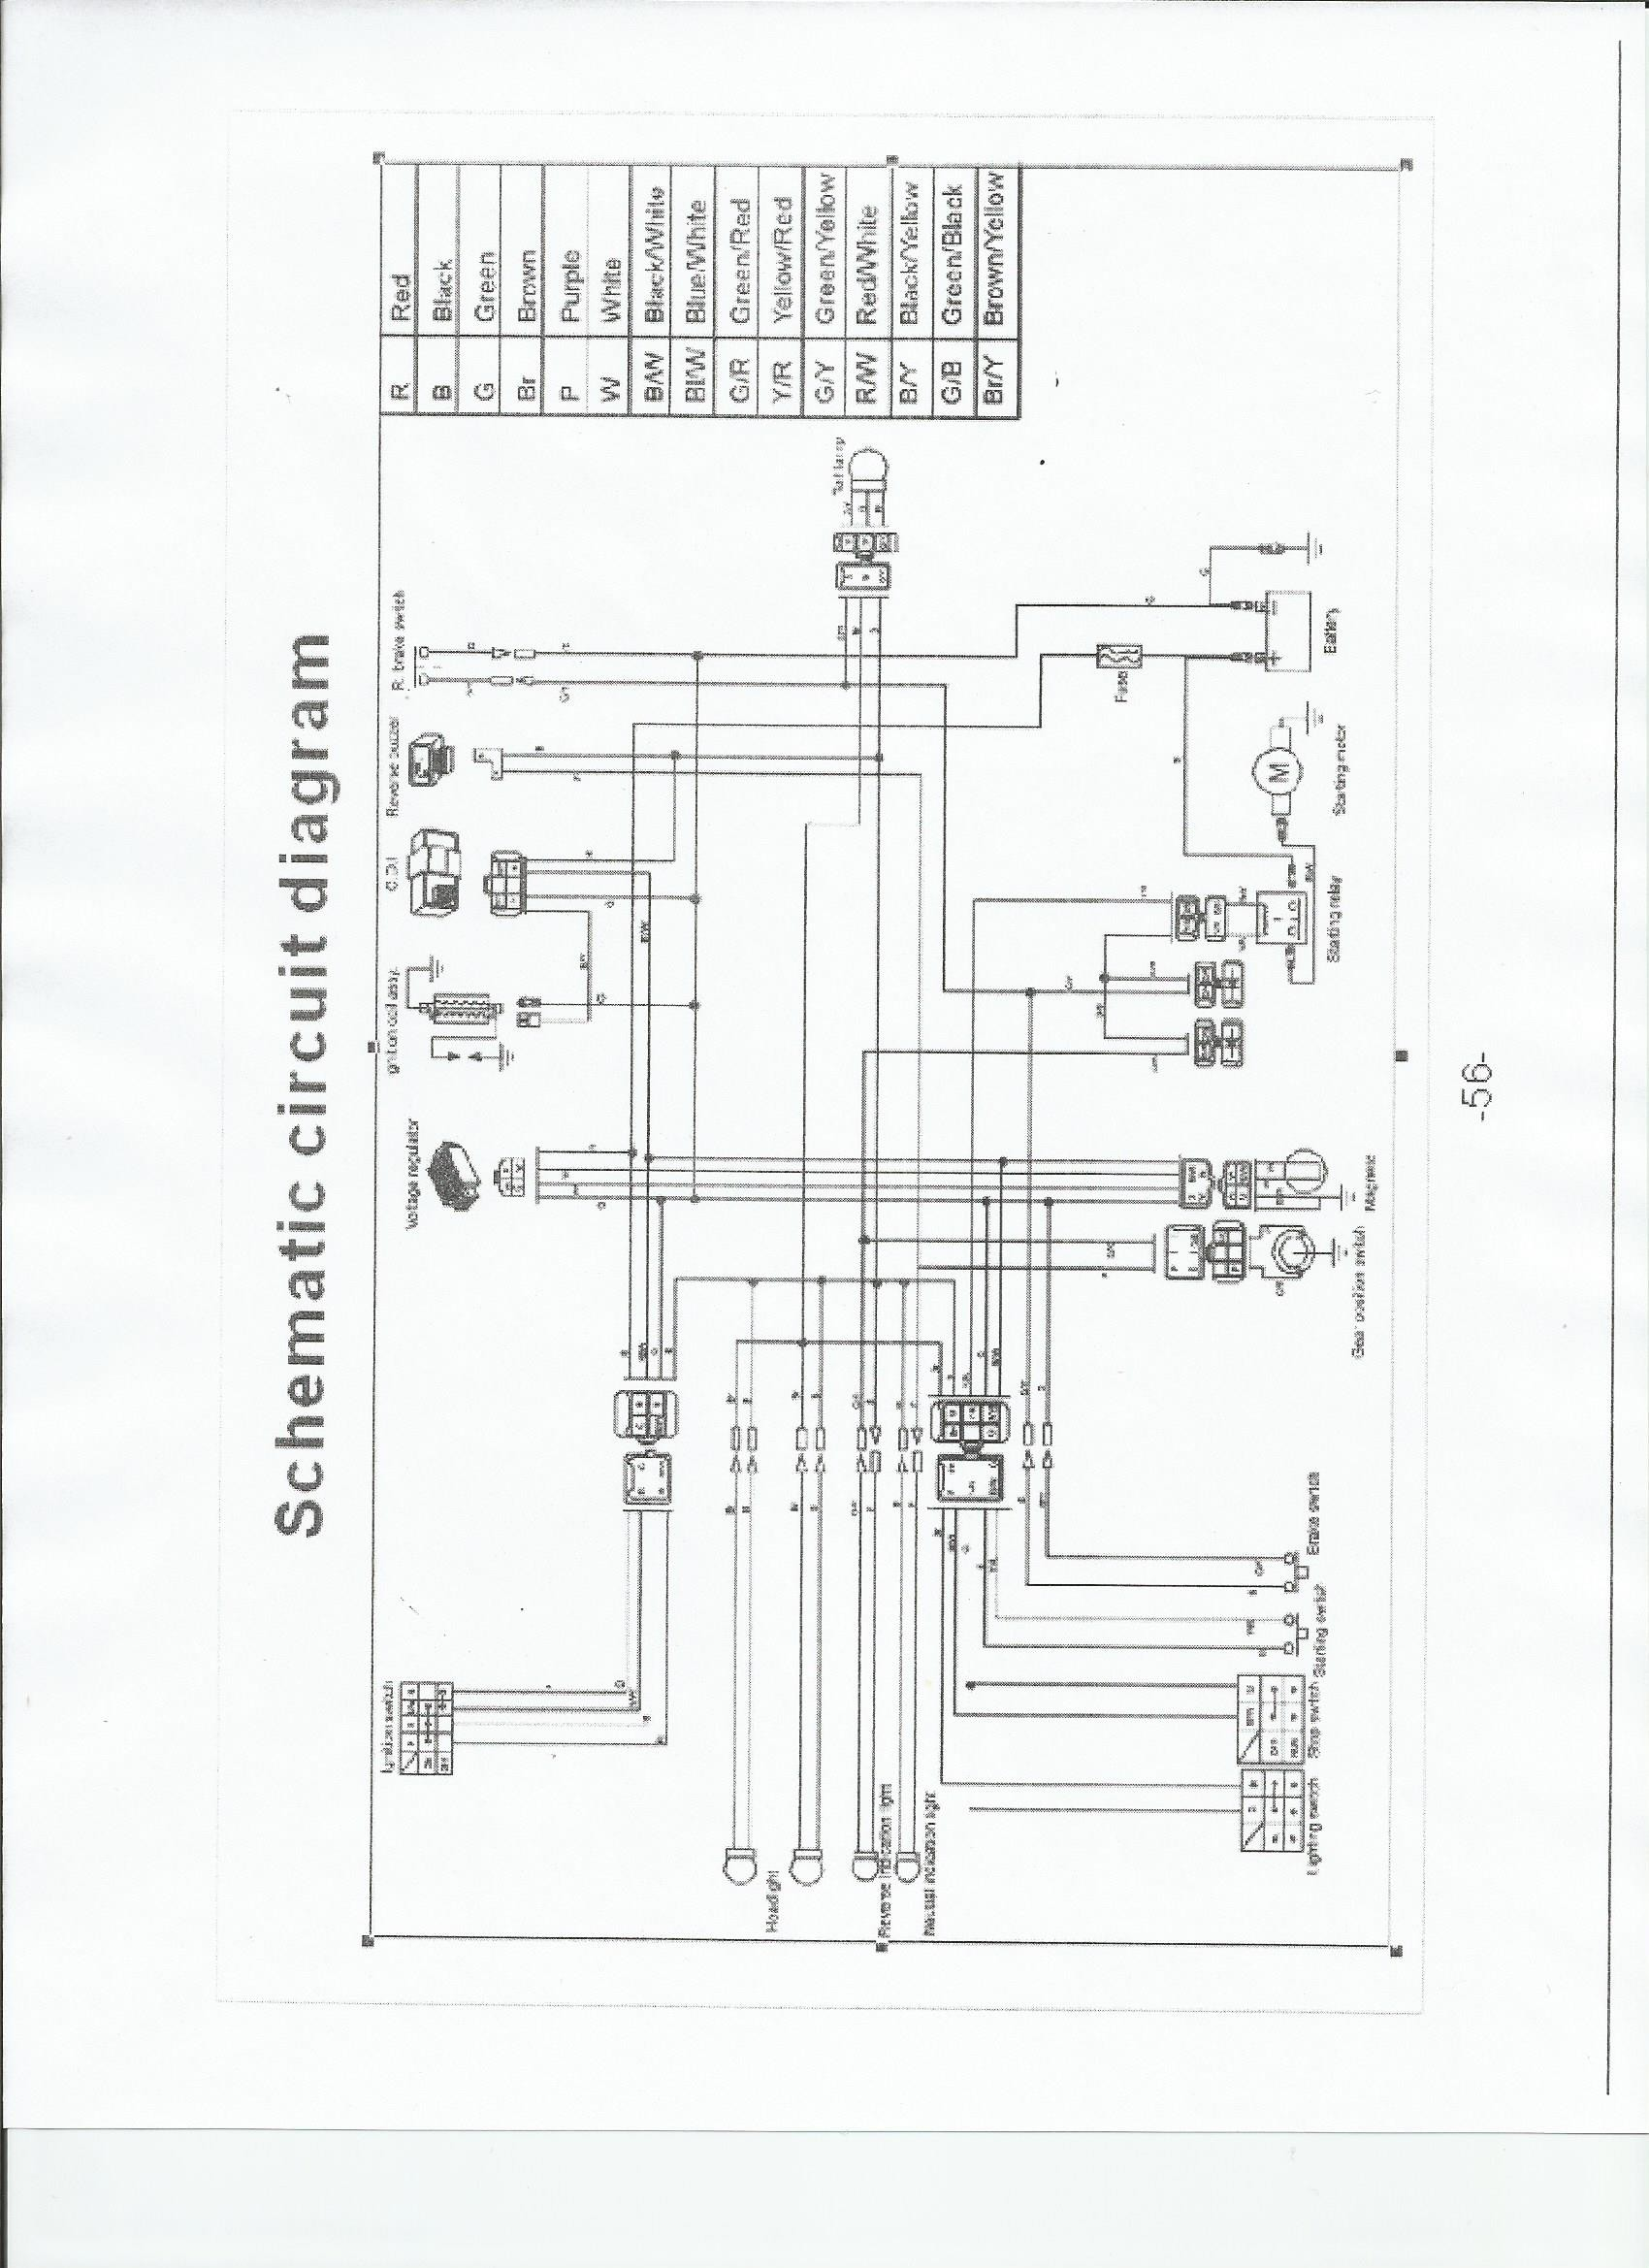 2012 taotao 49cc scooter wiring diagram